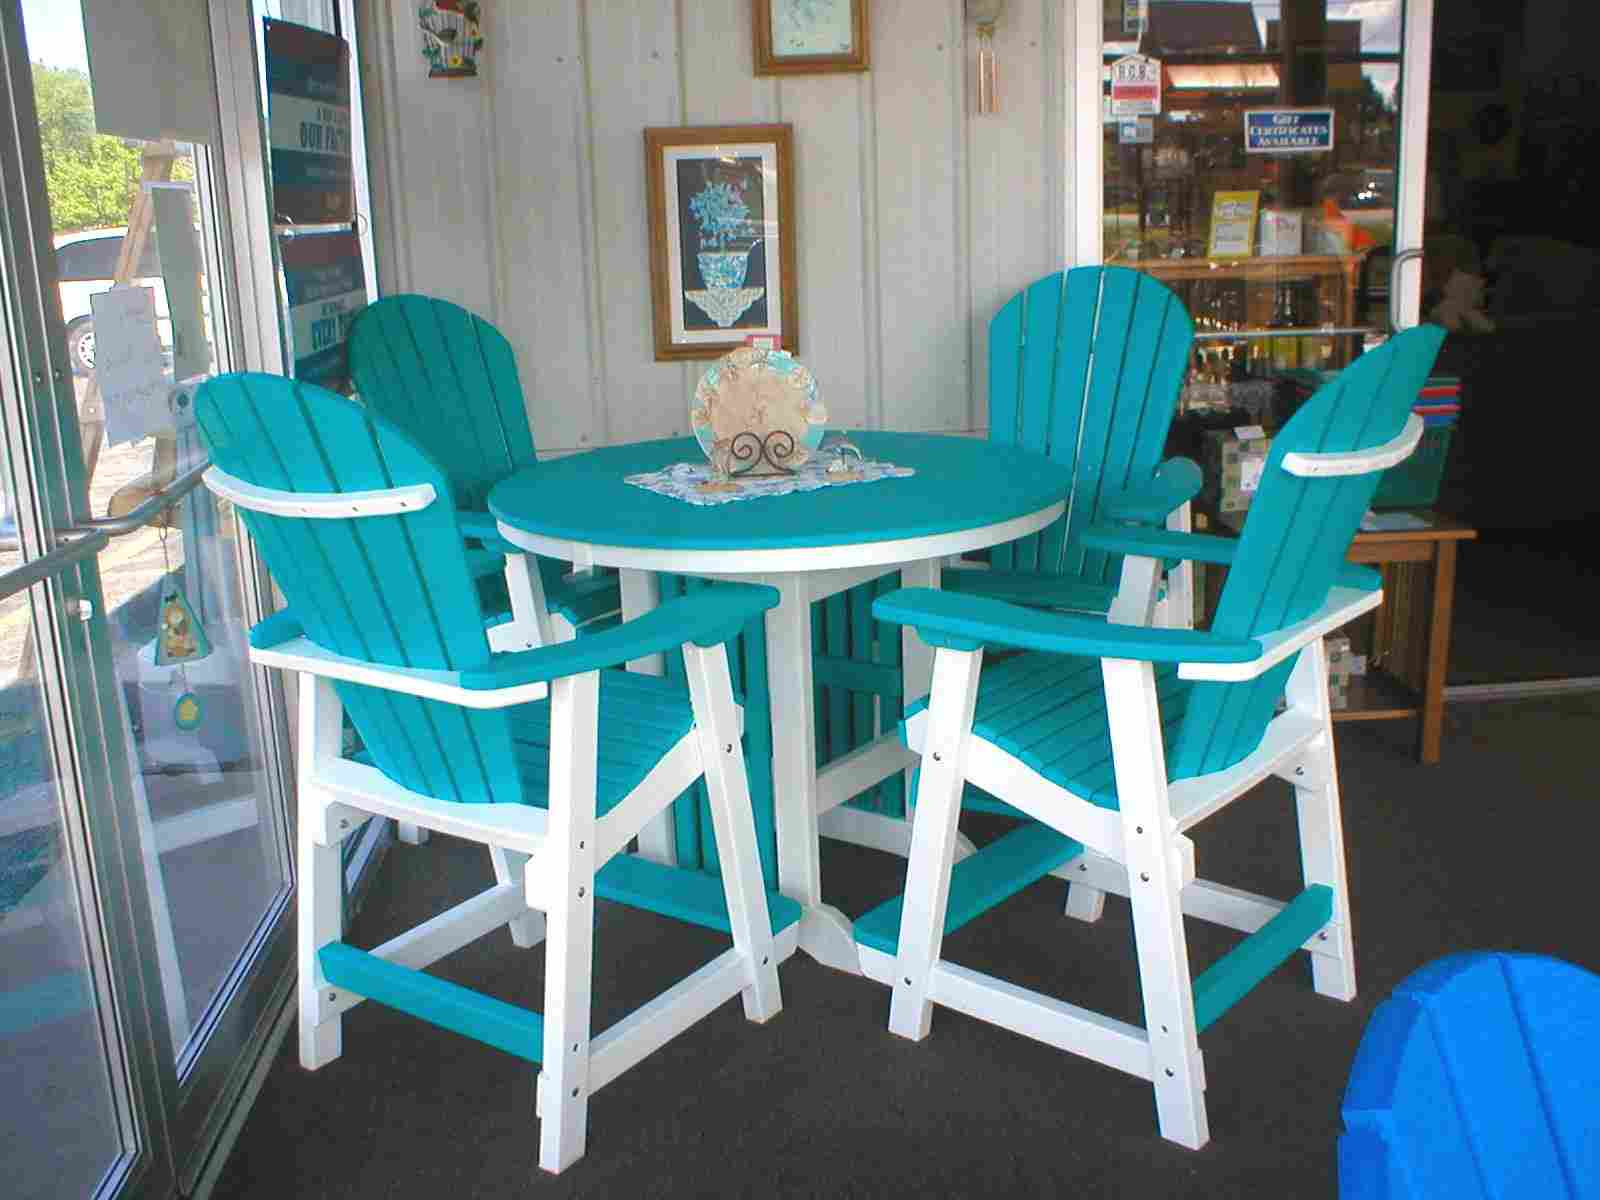 Outside Tables And Chairs Lawn Furniture Garden And Patio Furniture Rochester Ny